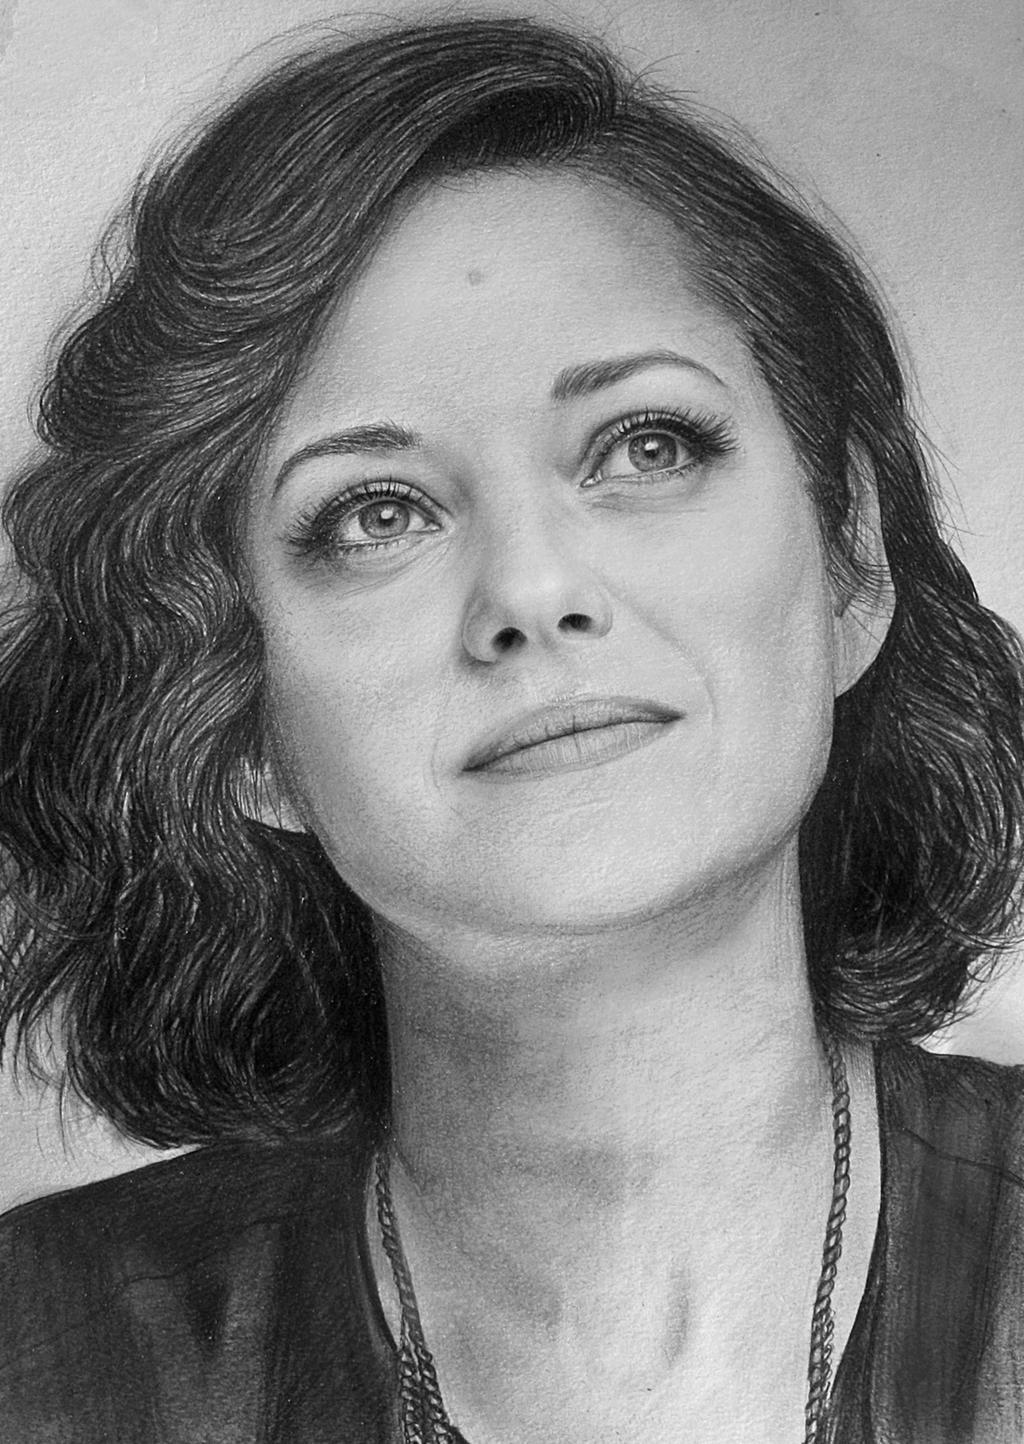 Marion Cotillard by LazzzyV